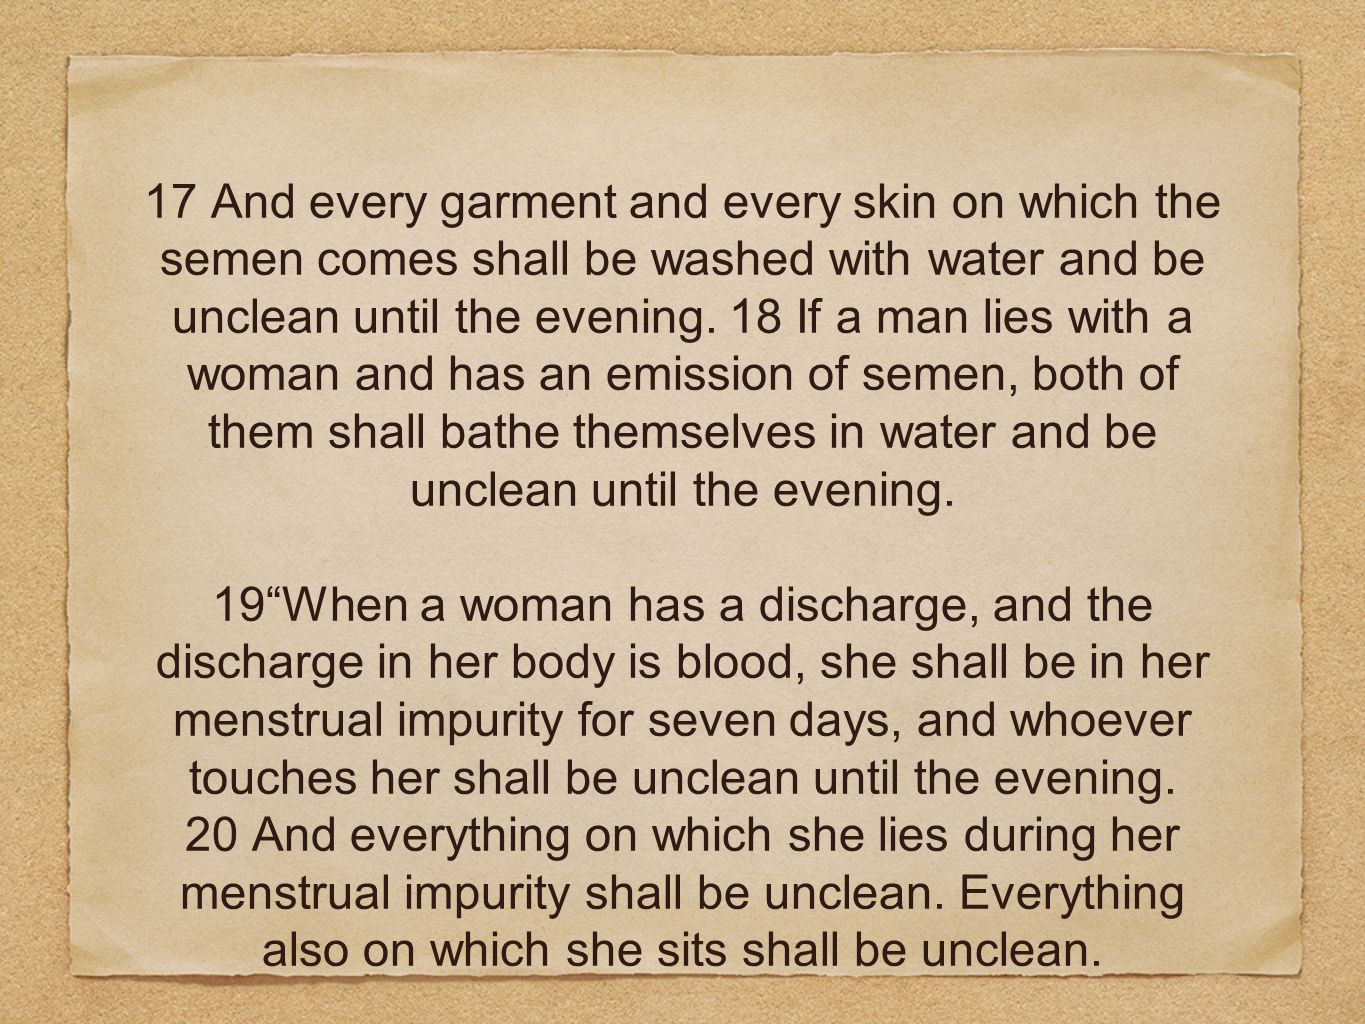 17 And every garment and every skin on which the semen comes shall be washed with water and be unclean until the evening. 18 If a man lies with a woma